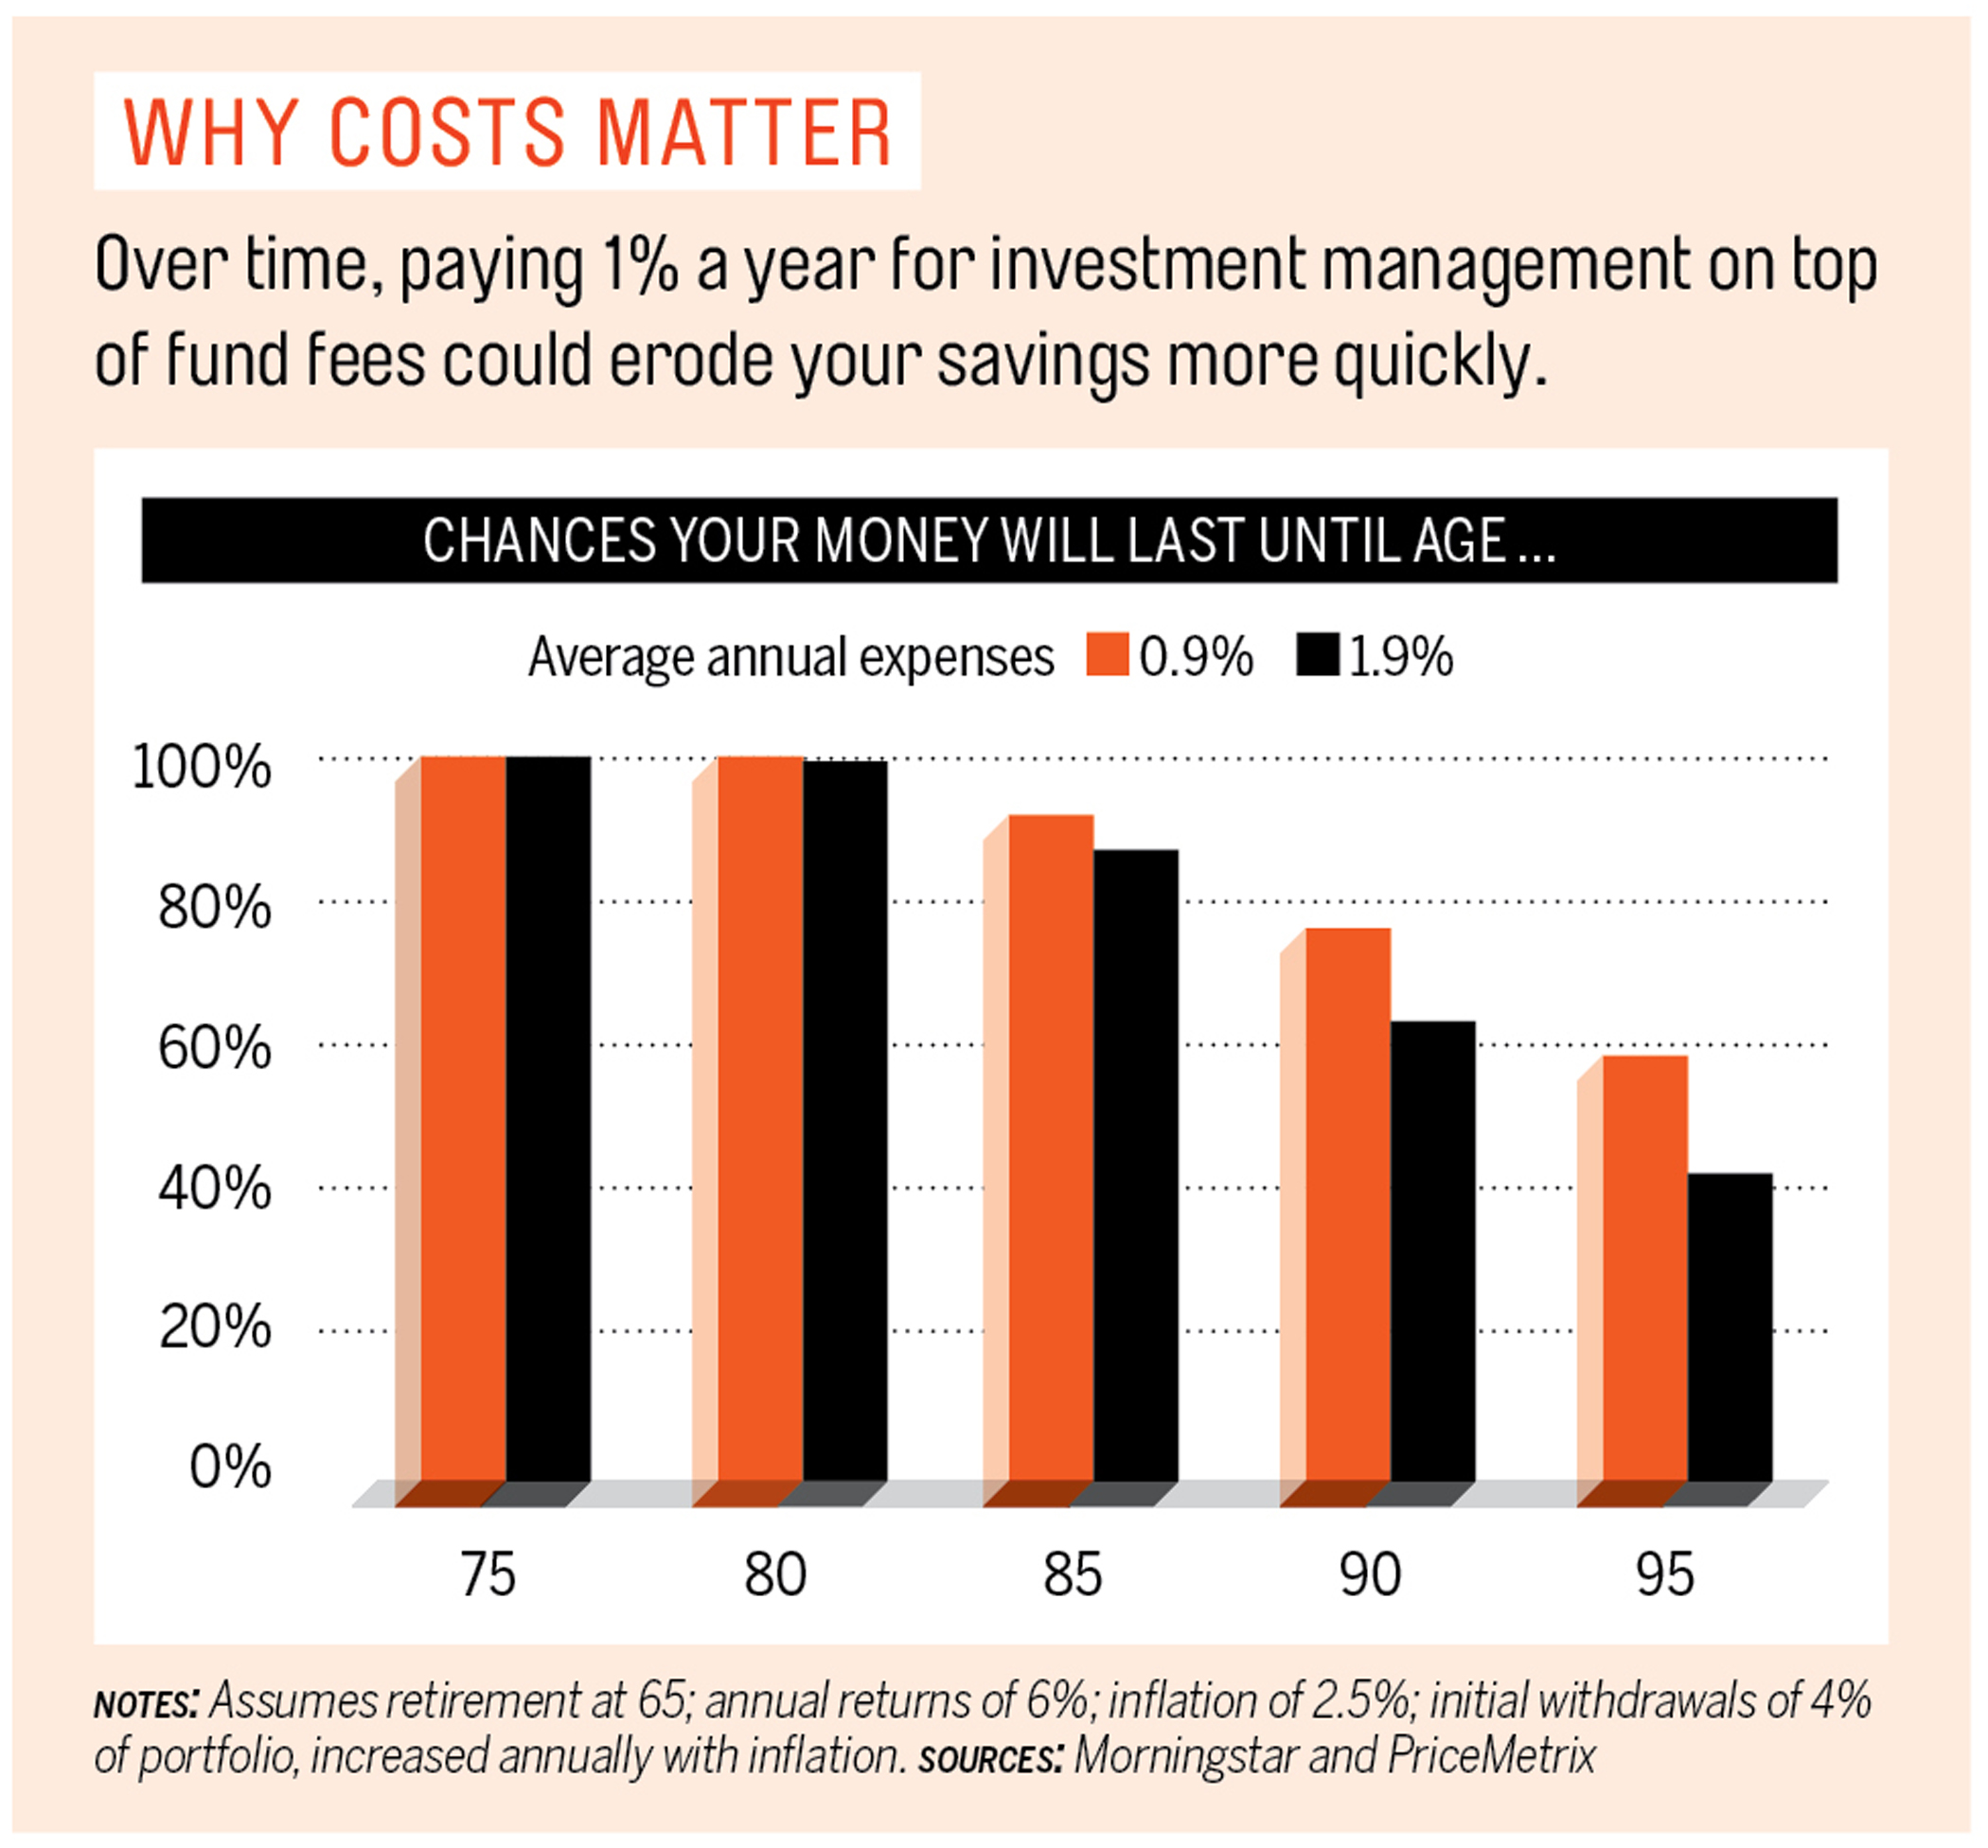 Why costs matter